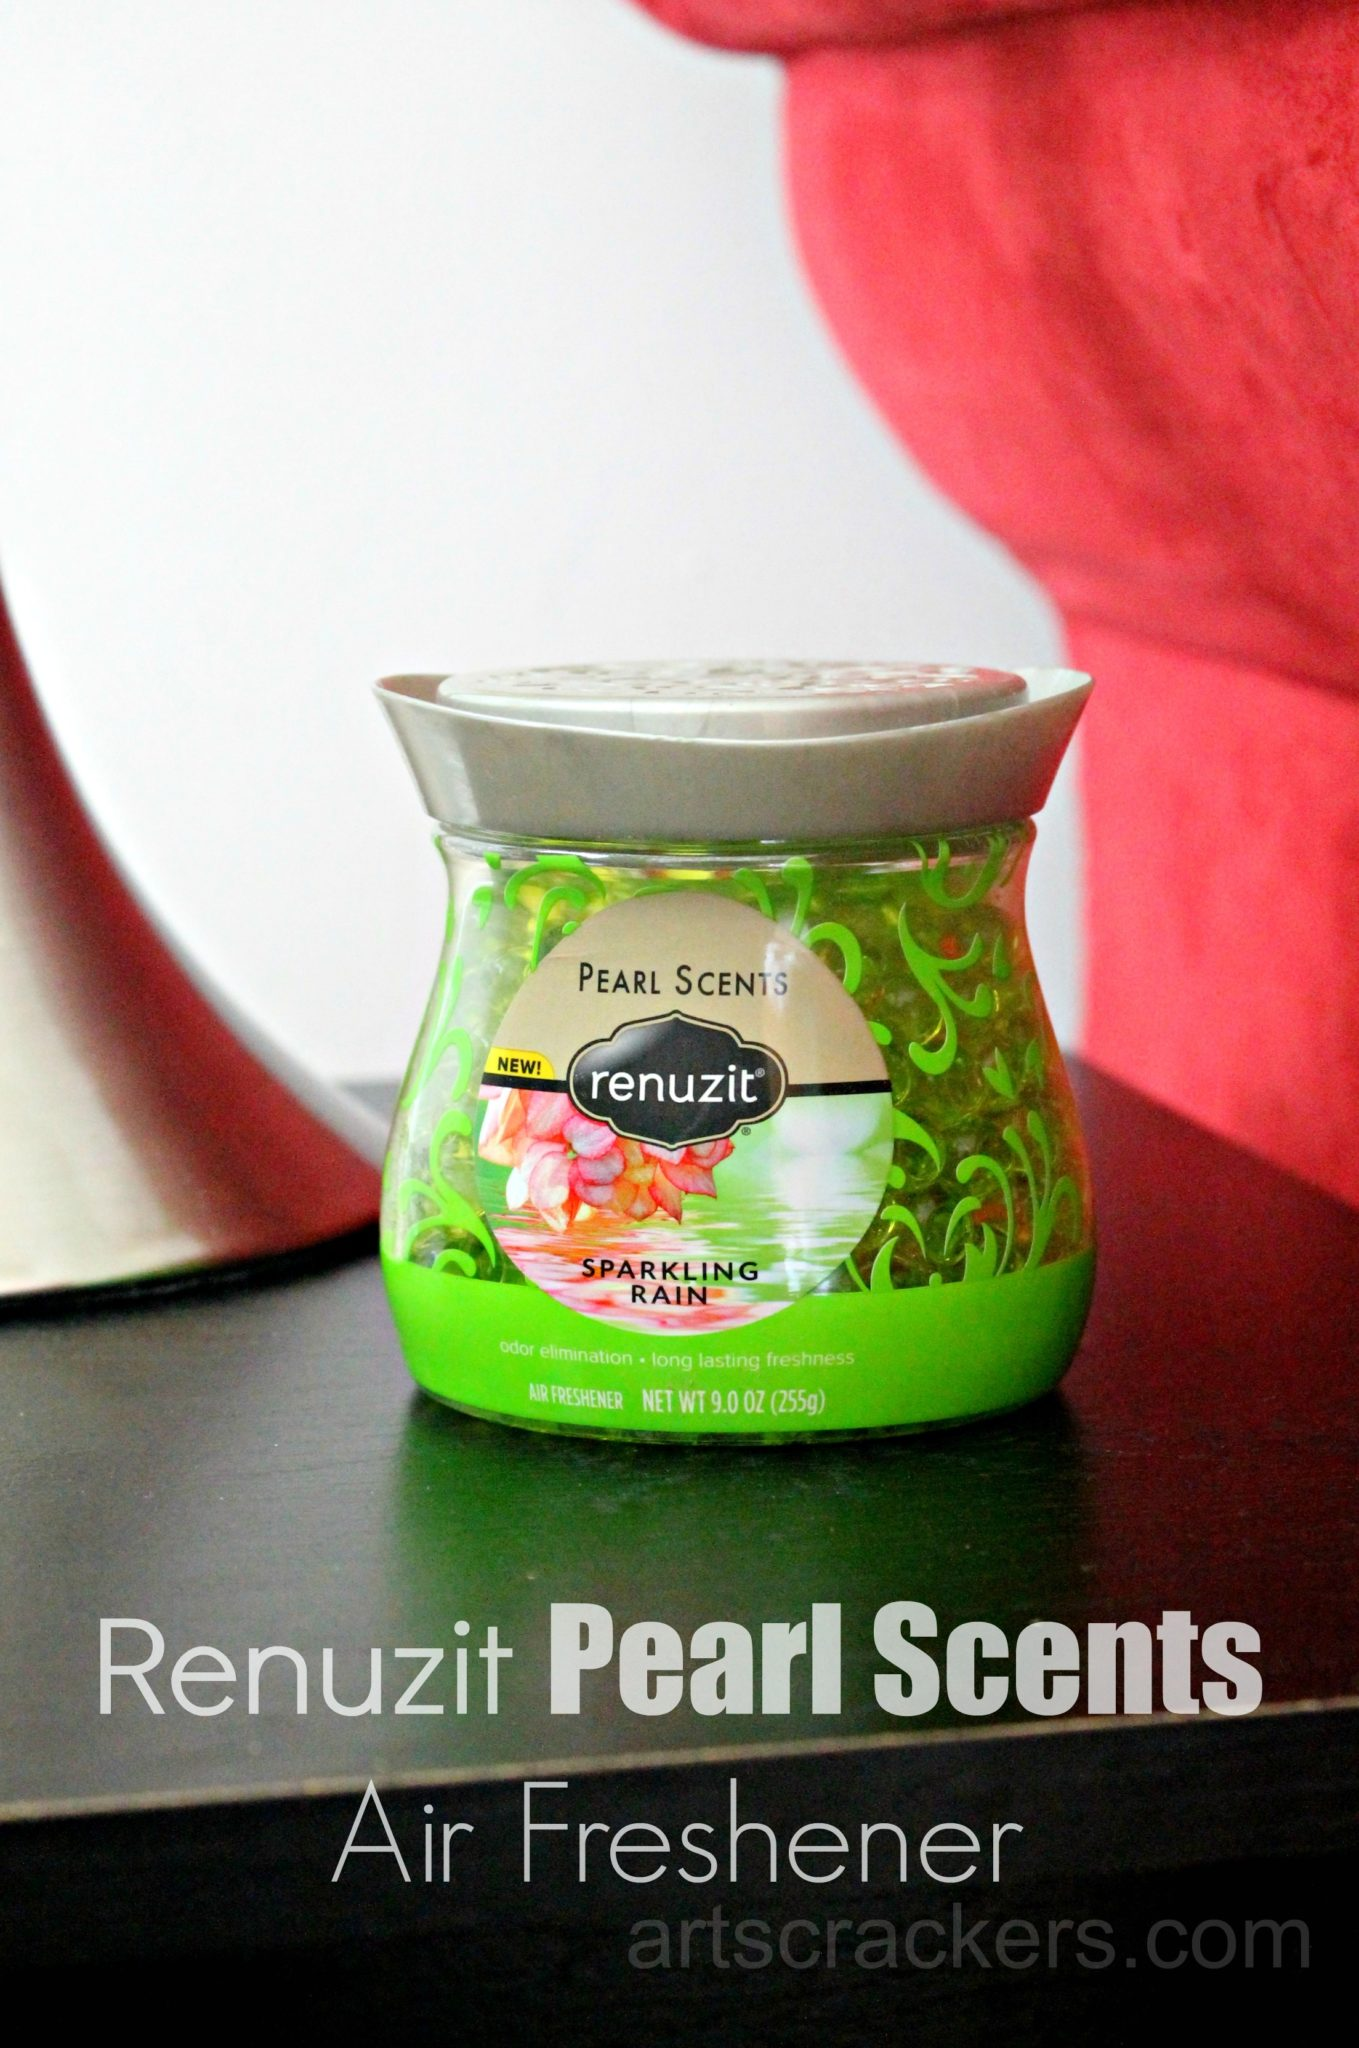 Renuzit Pearl Scents Air Freshener. Click the picture to read the review.